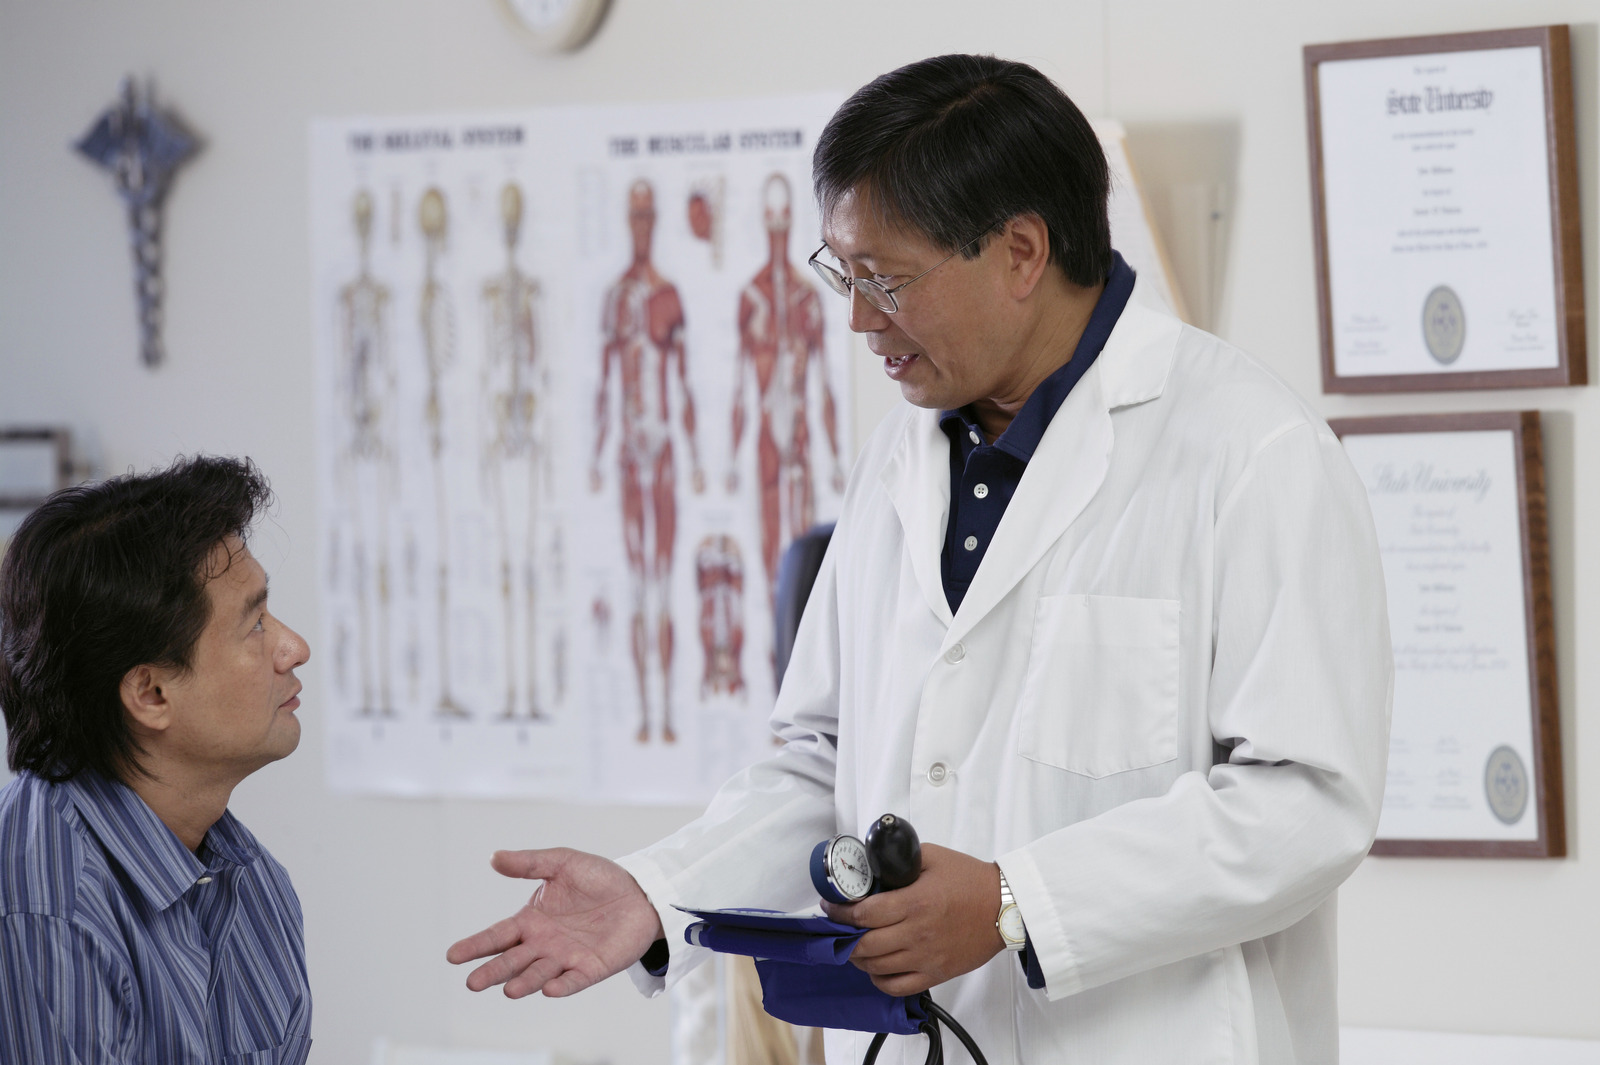 Doctor counseling patient about a health condition